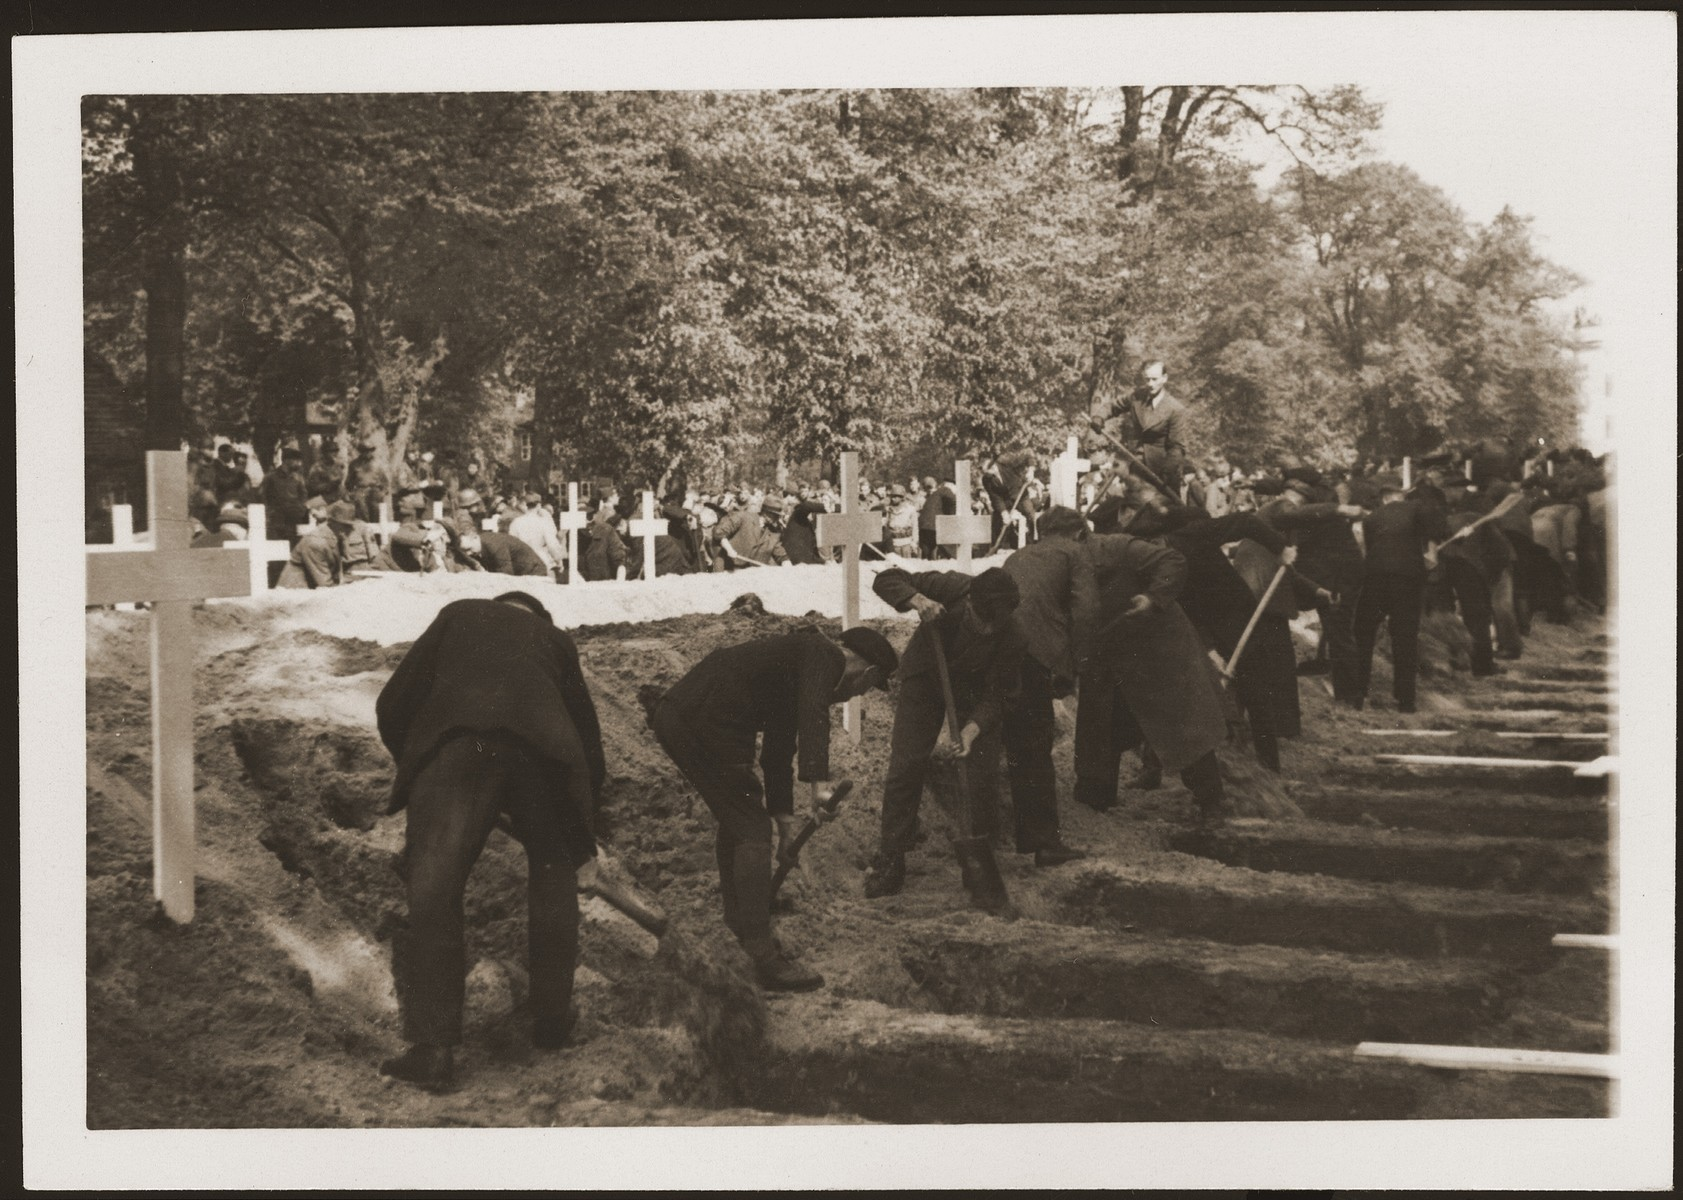 The population of Ludwigslust digs graves on the palace grounds of the Archduke of Mecklenburg, where they have been forced by U.S. troops to bury the bodies of prisoners killed in the Woebbelin concentration camp.